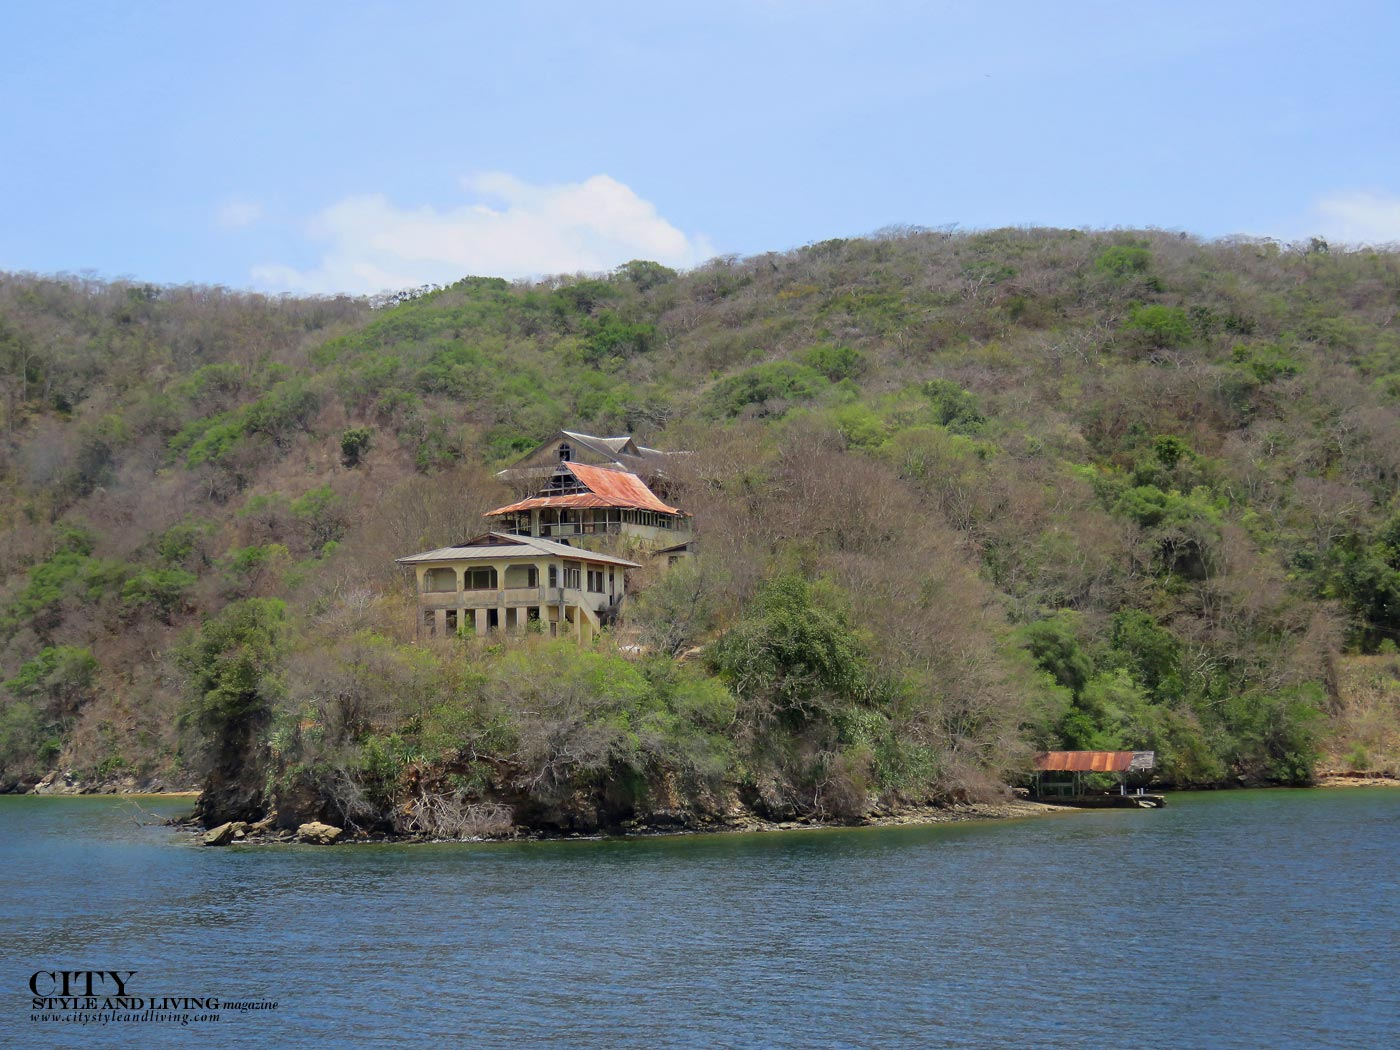 City Style and Living Magazine trinidad and tobago western isles boat tour old houses